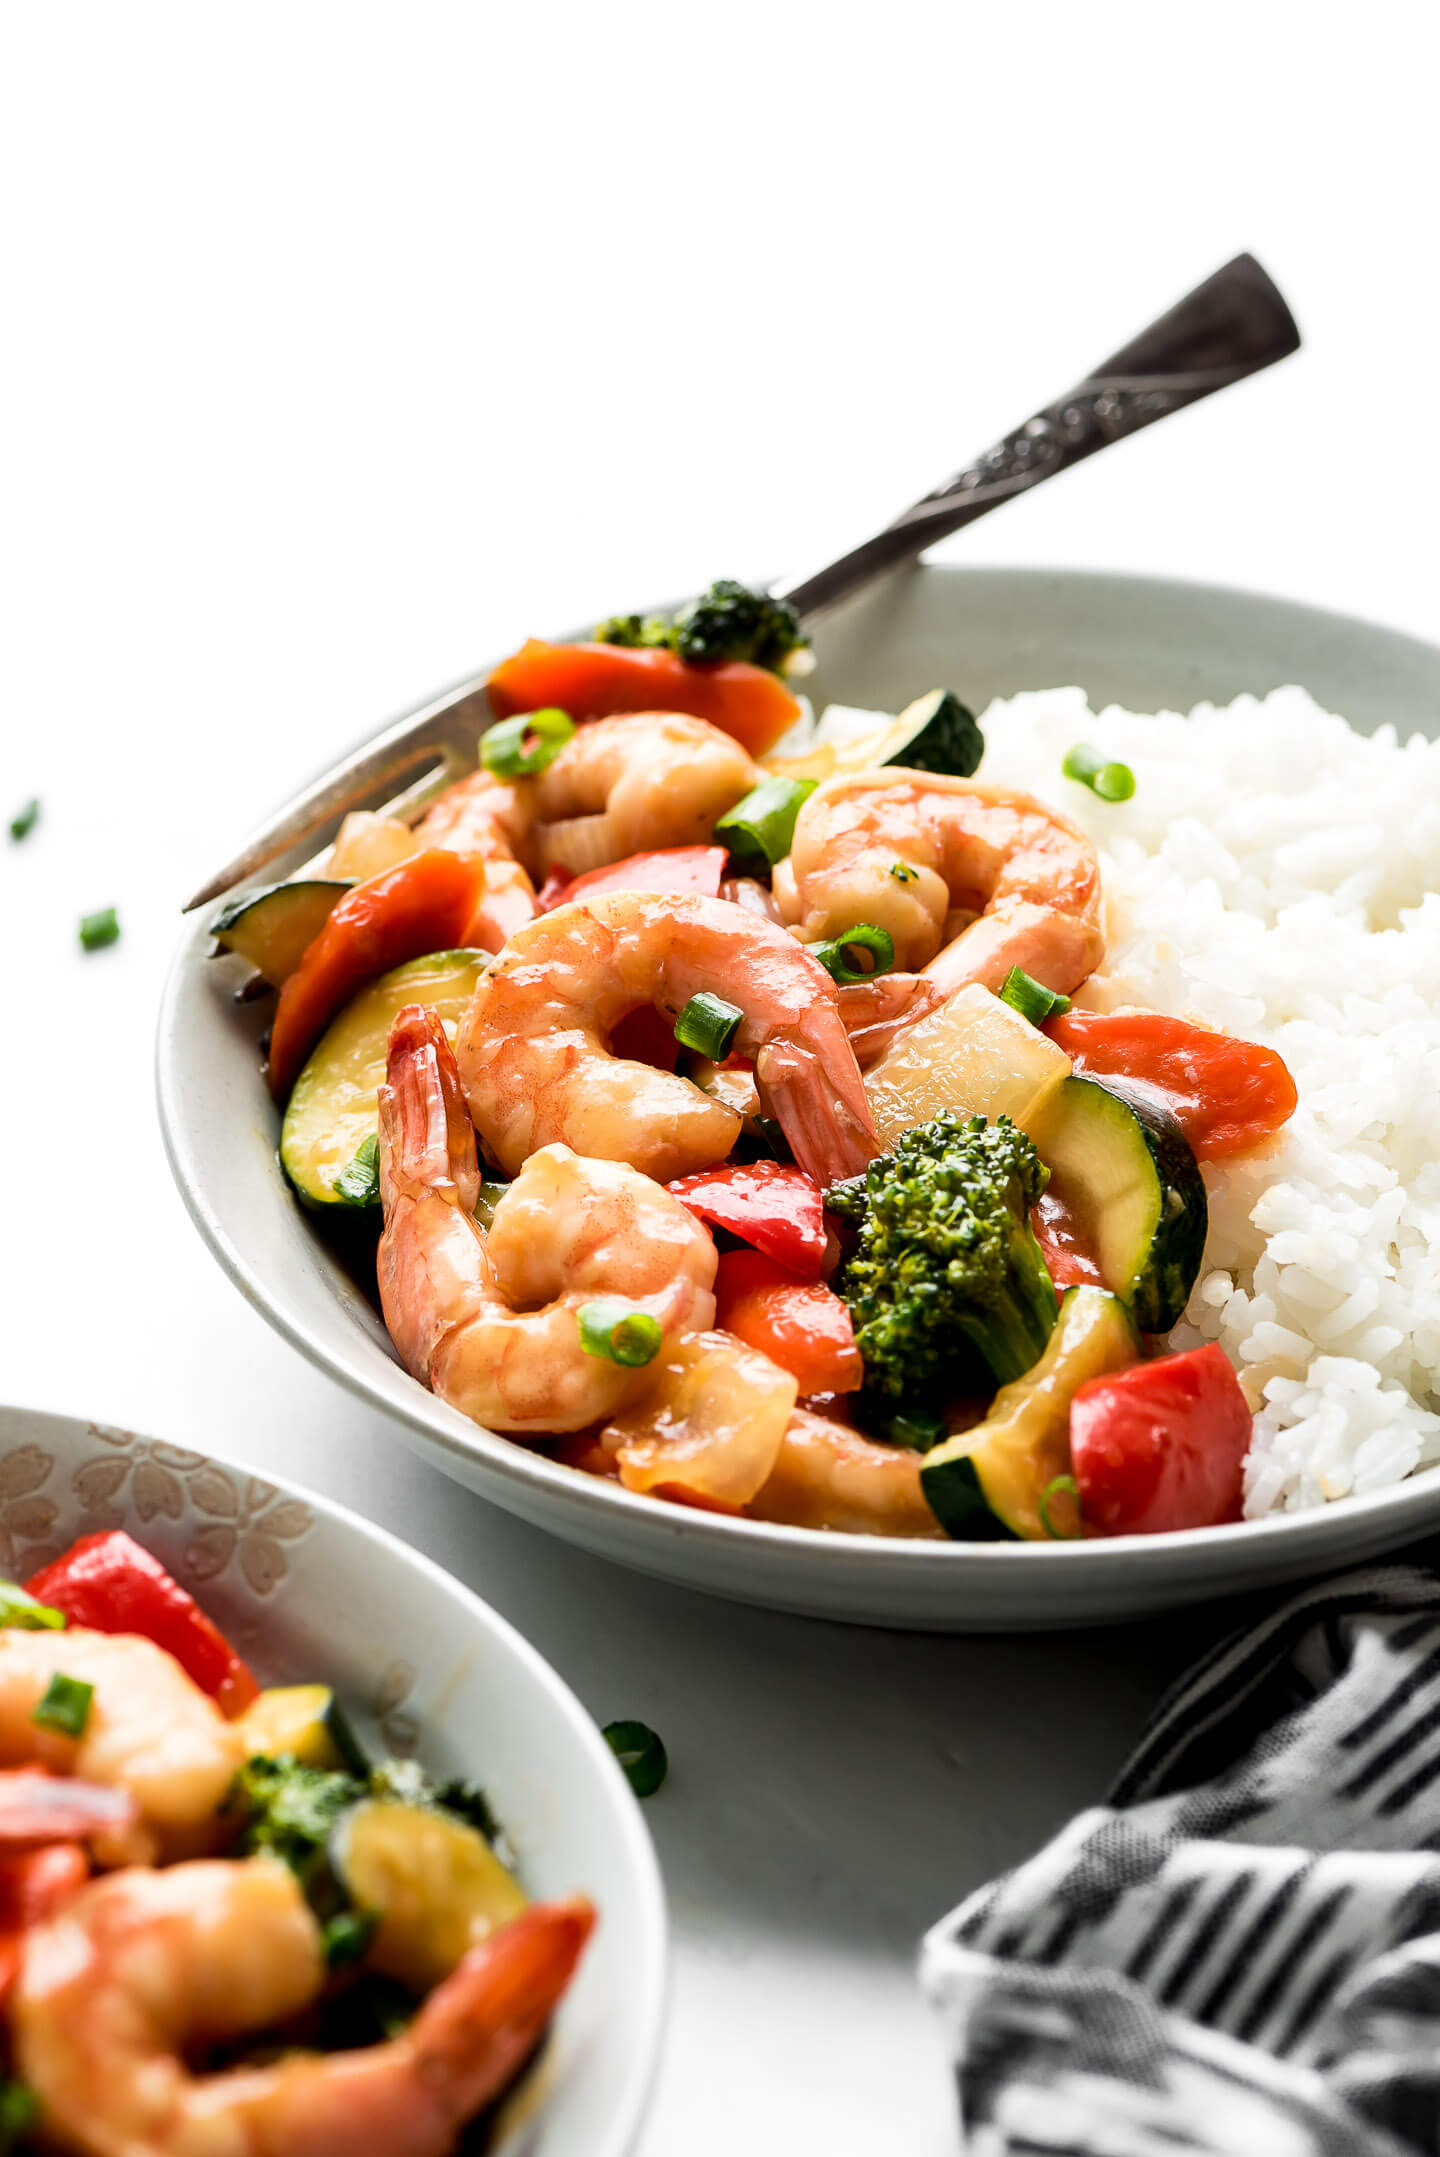 A close up shot of Shrimp Stir Fry in a bowl with rice.